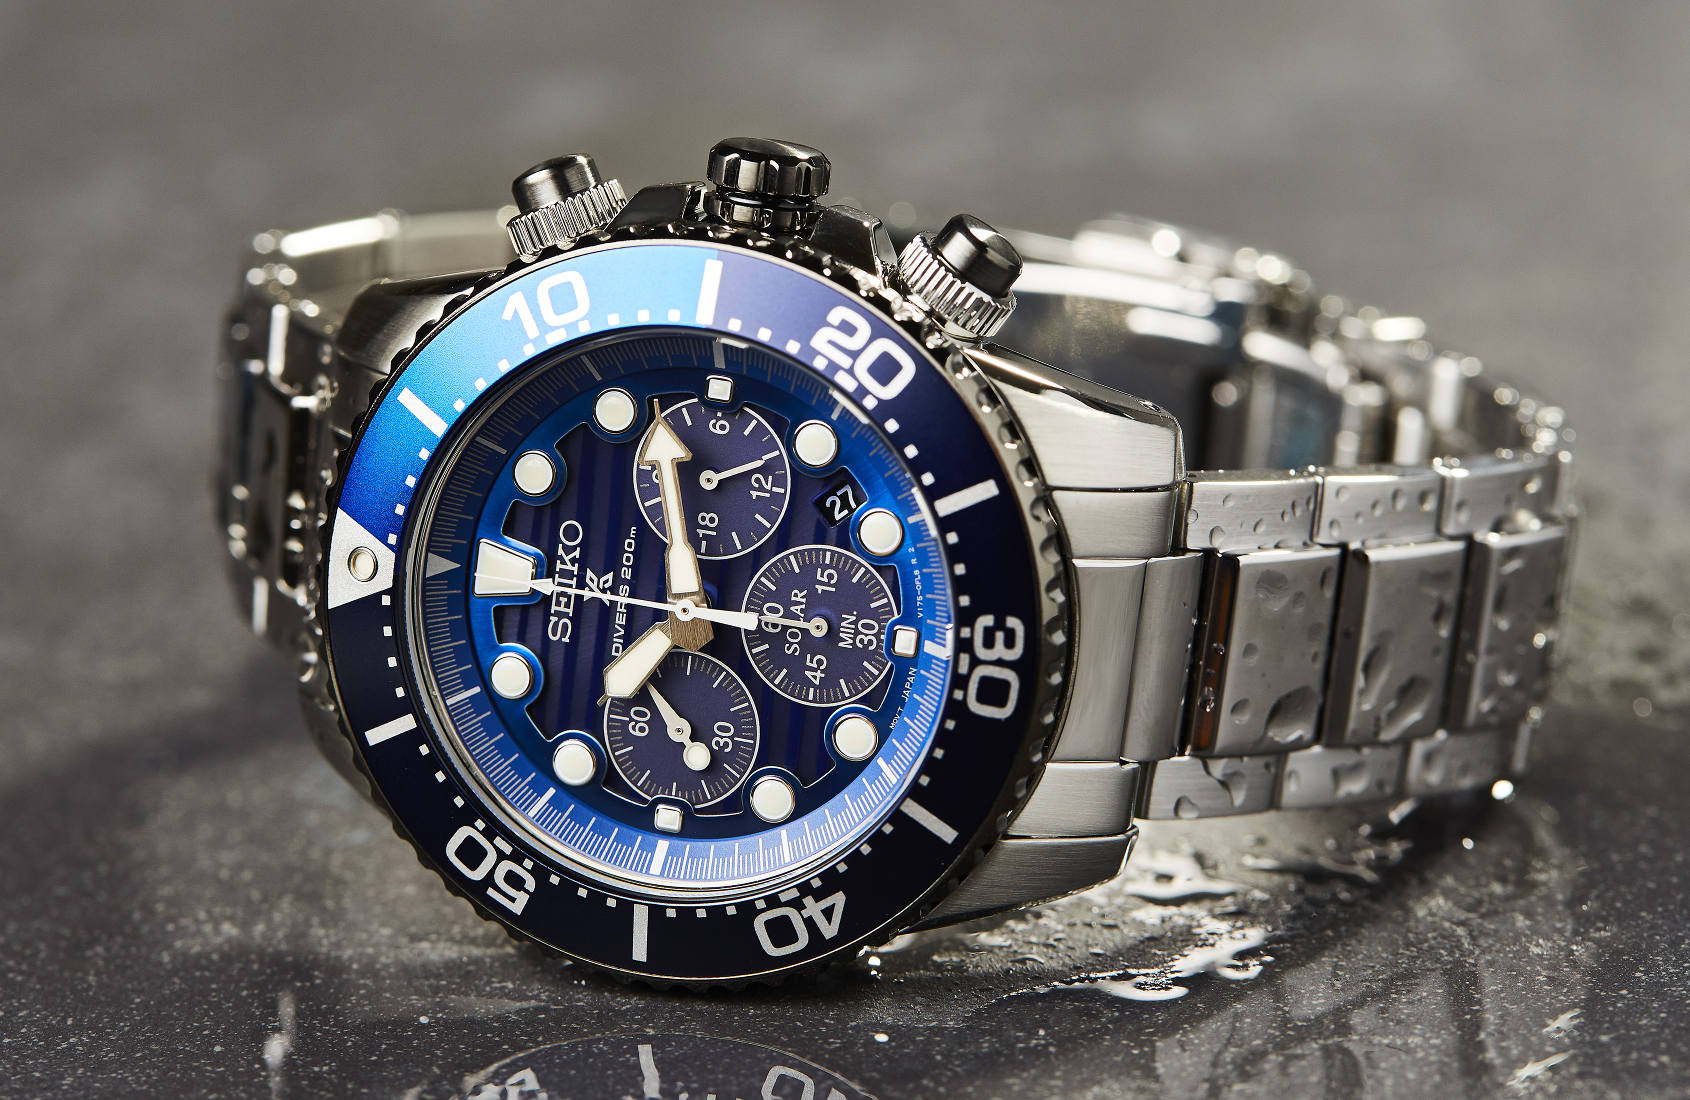 HANDS-ON: Sun and sea combined – the Seiko Prospex 'Save The Ocean' SSC675P